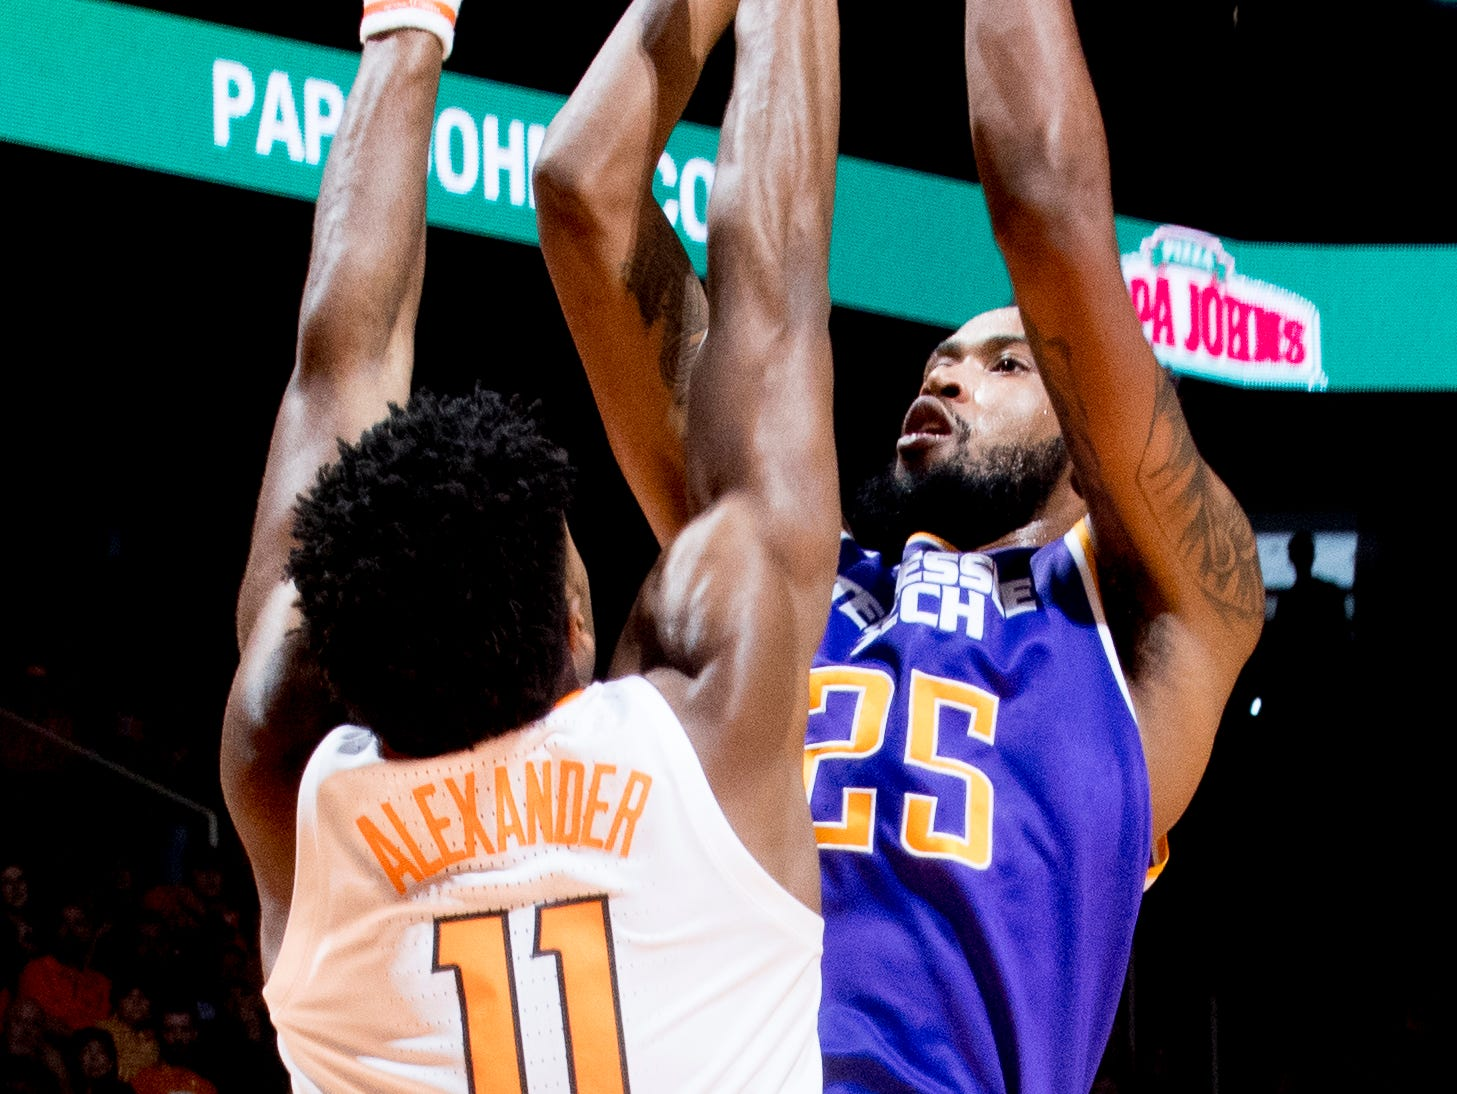 Tennessee Tech forward Malik Martin (25) shoots past Tennessee forward Kyle Alexander (11)  during a game between Tennessee and Tennessee Tech at Thompson-Boling Arena in Knoxville, Tennessee on Saturday, December 29, 2018.